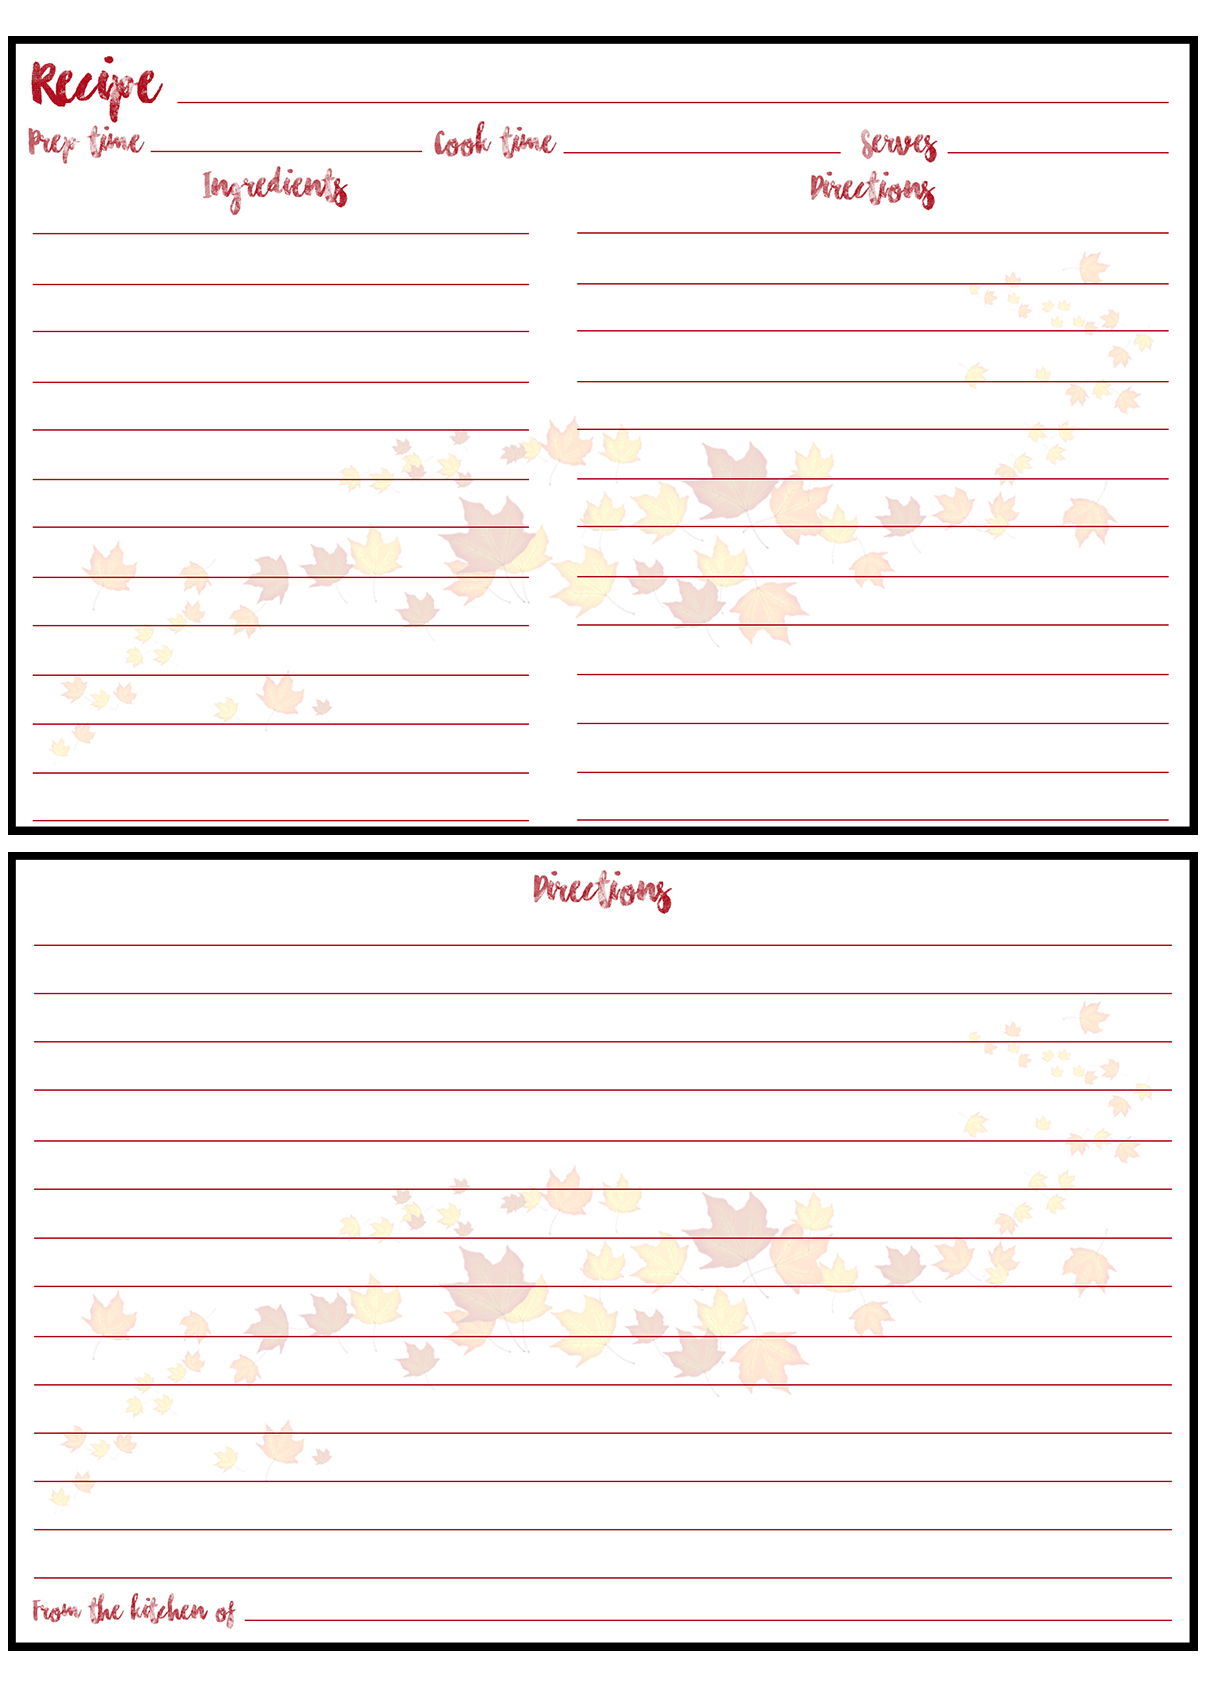 Printable Fall Recipe Card 4x6 Scattered Leaves